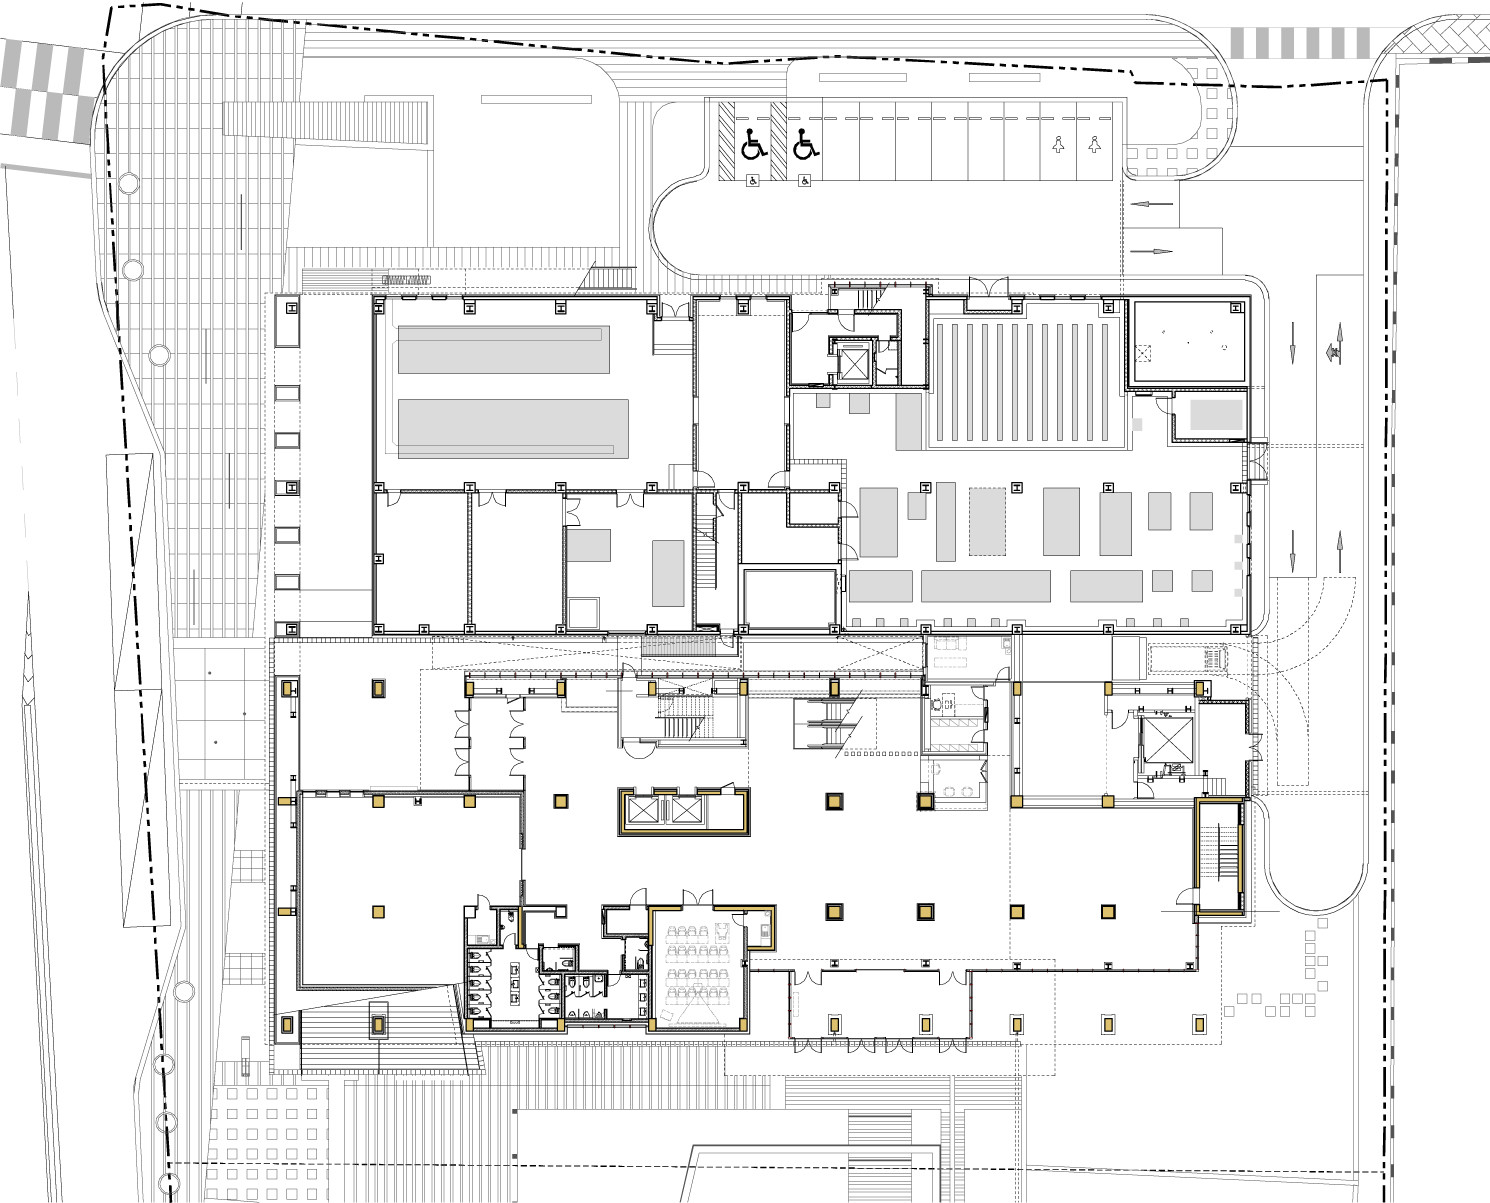 small resolution of national museum of korean contemporary history junglim architecture